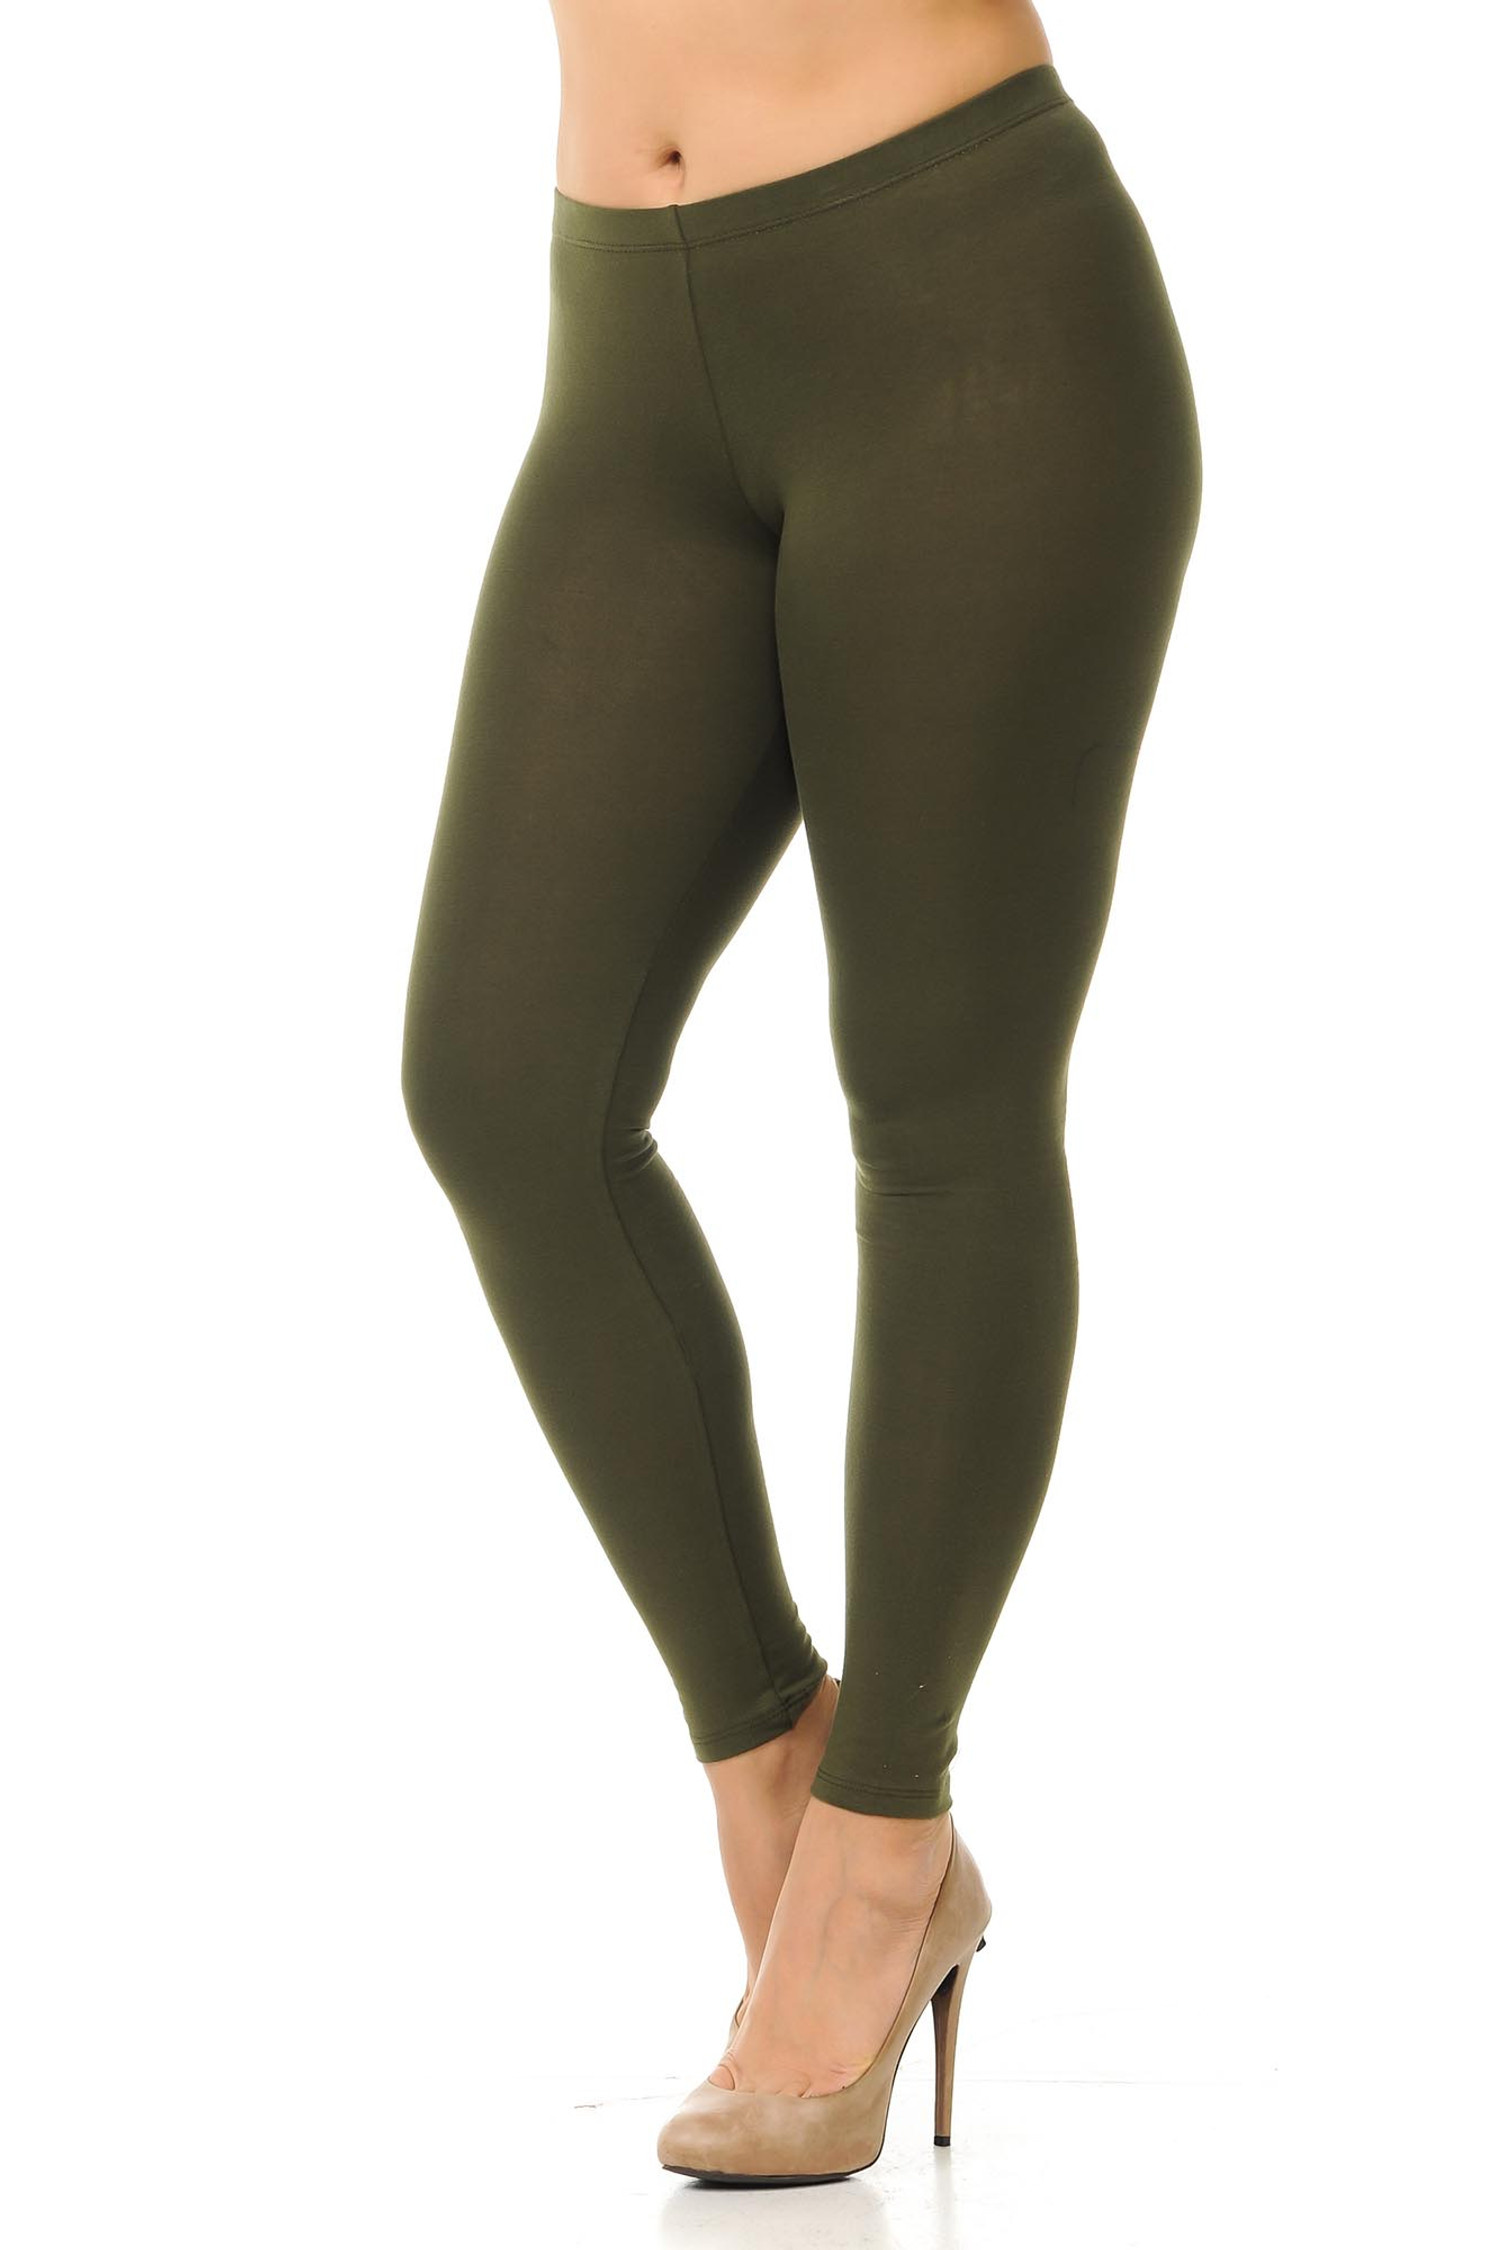 45 degree angled view of olive plus size qUSA Cotton Full Length Leggings